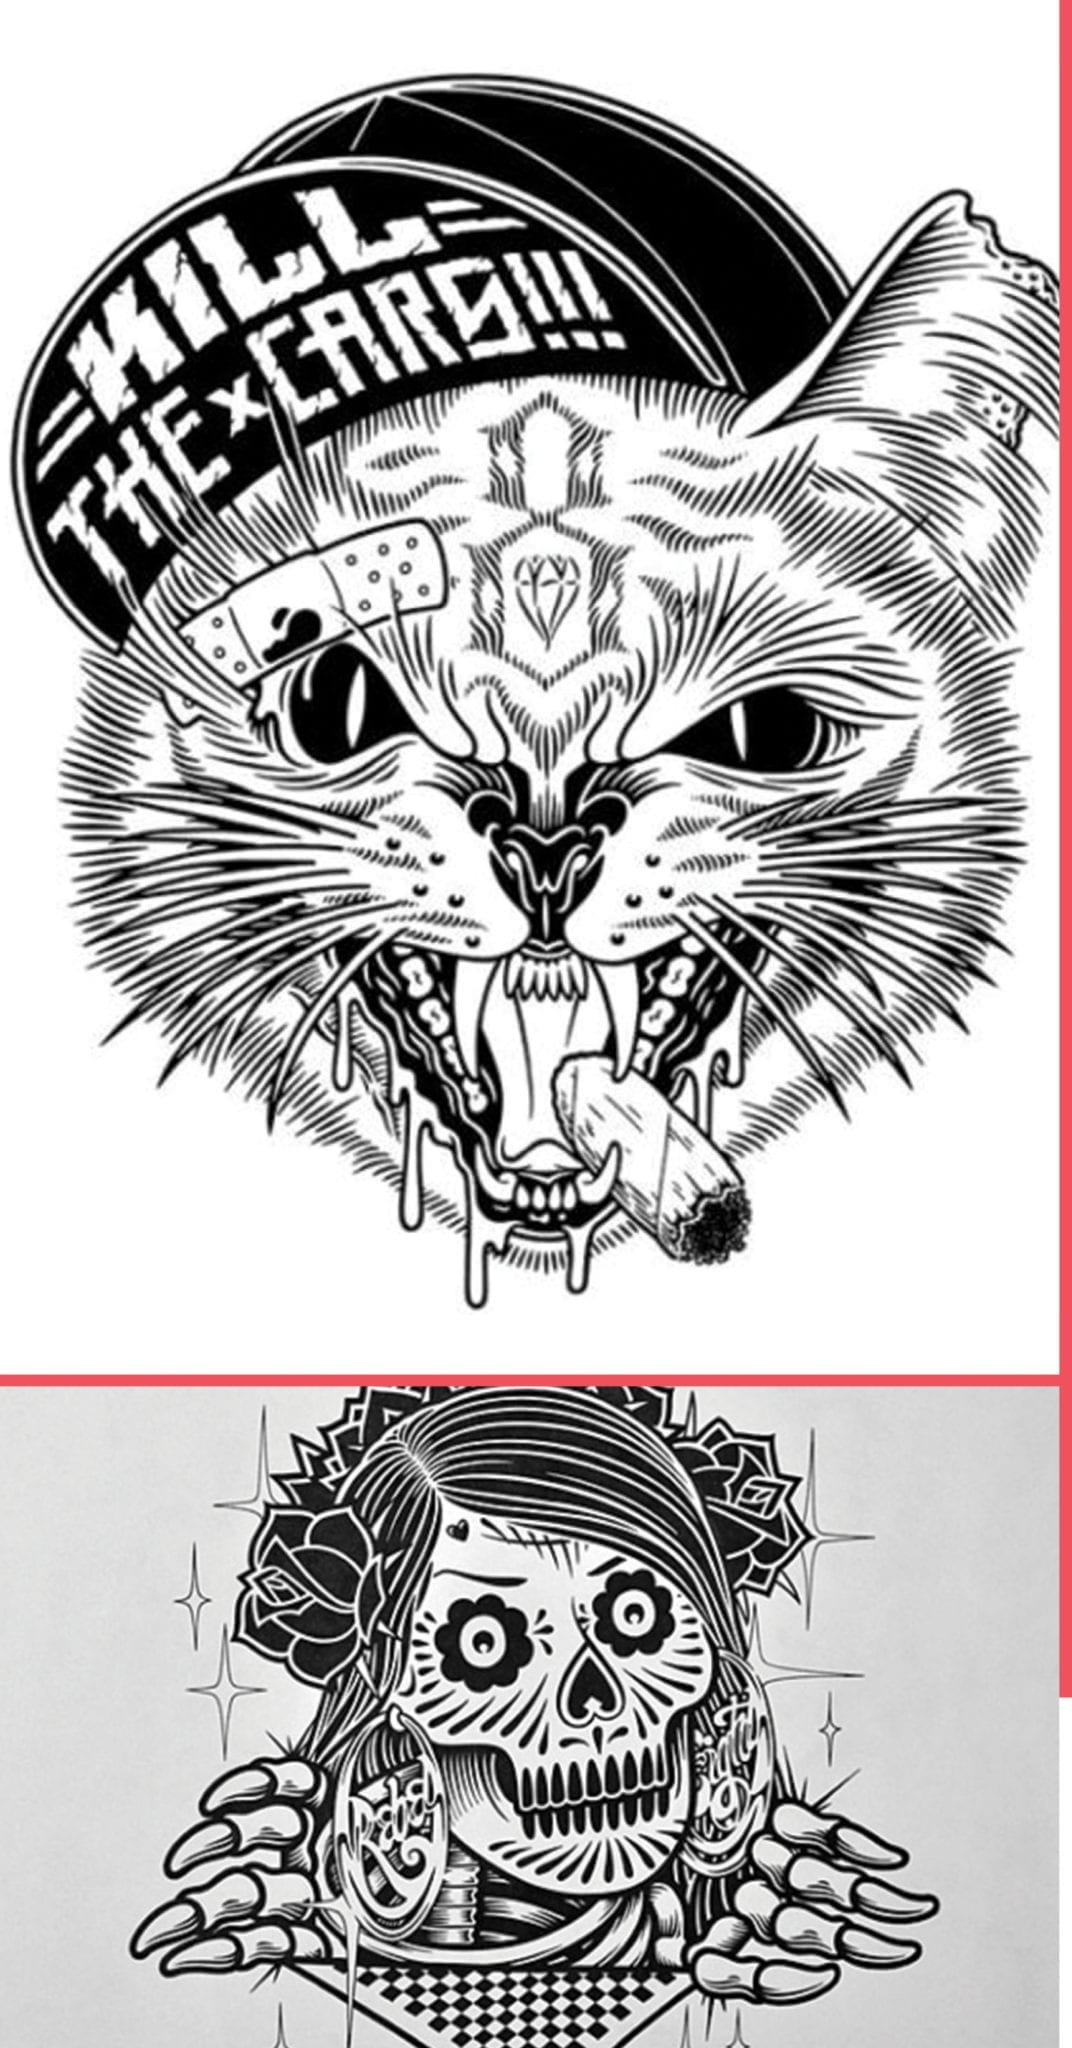 Mike Giant cat and skull ilustrations